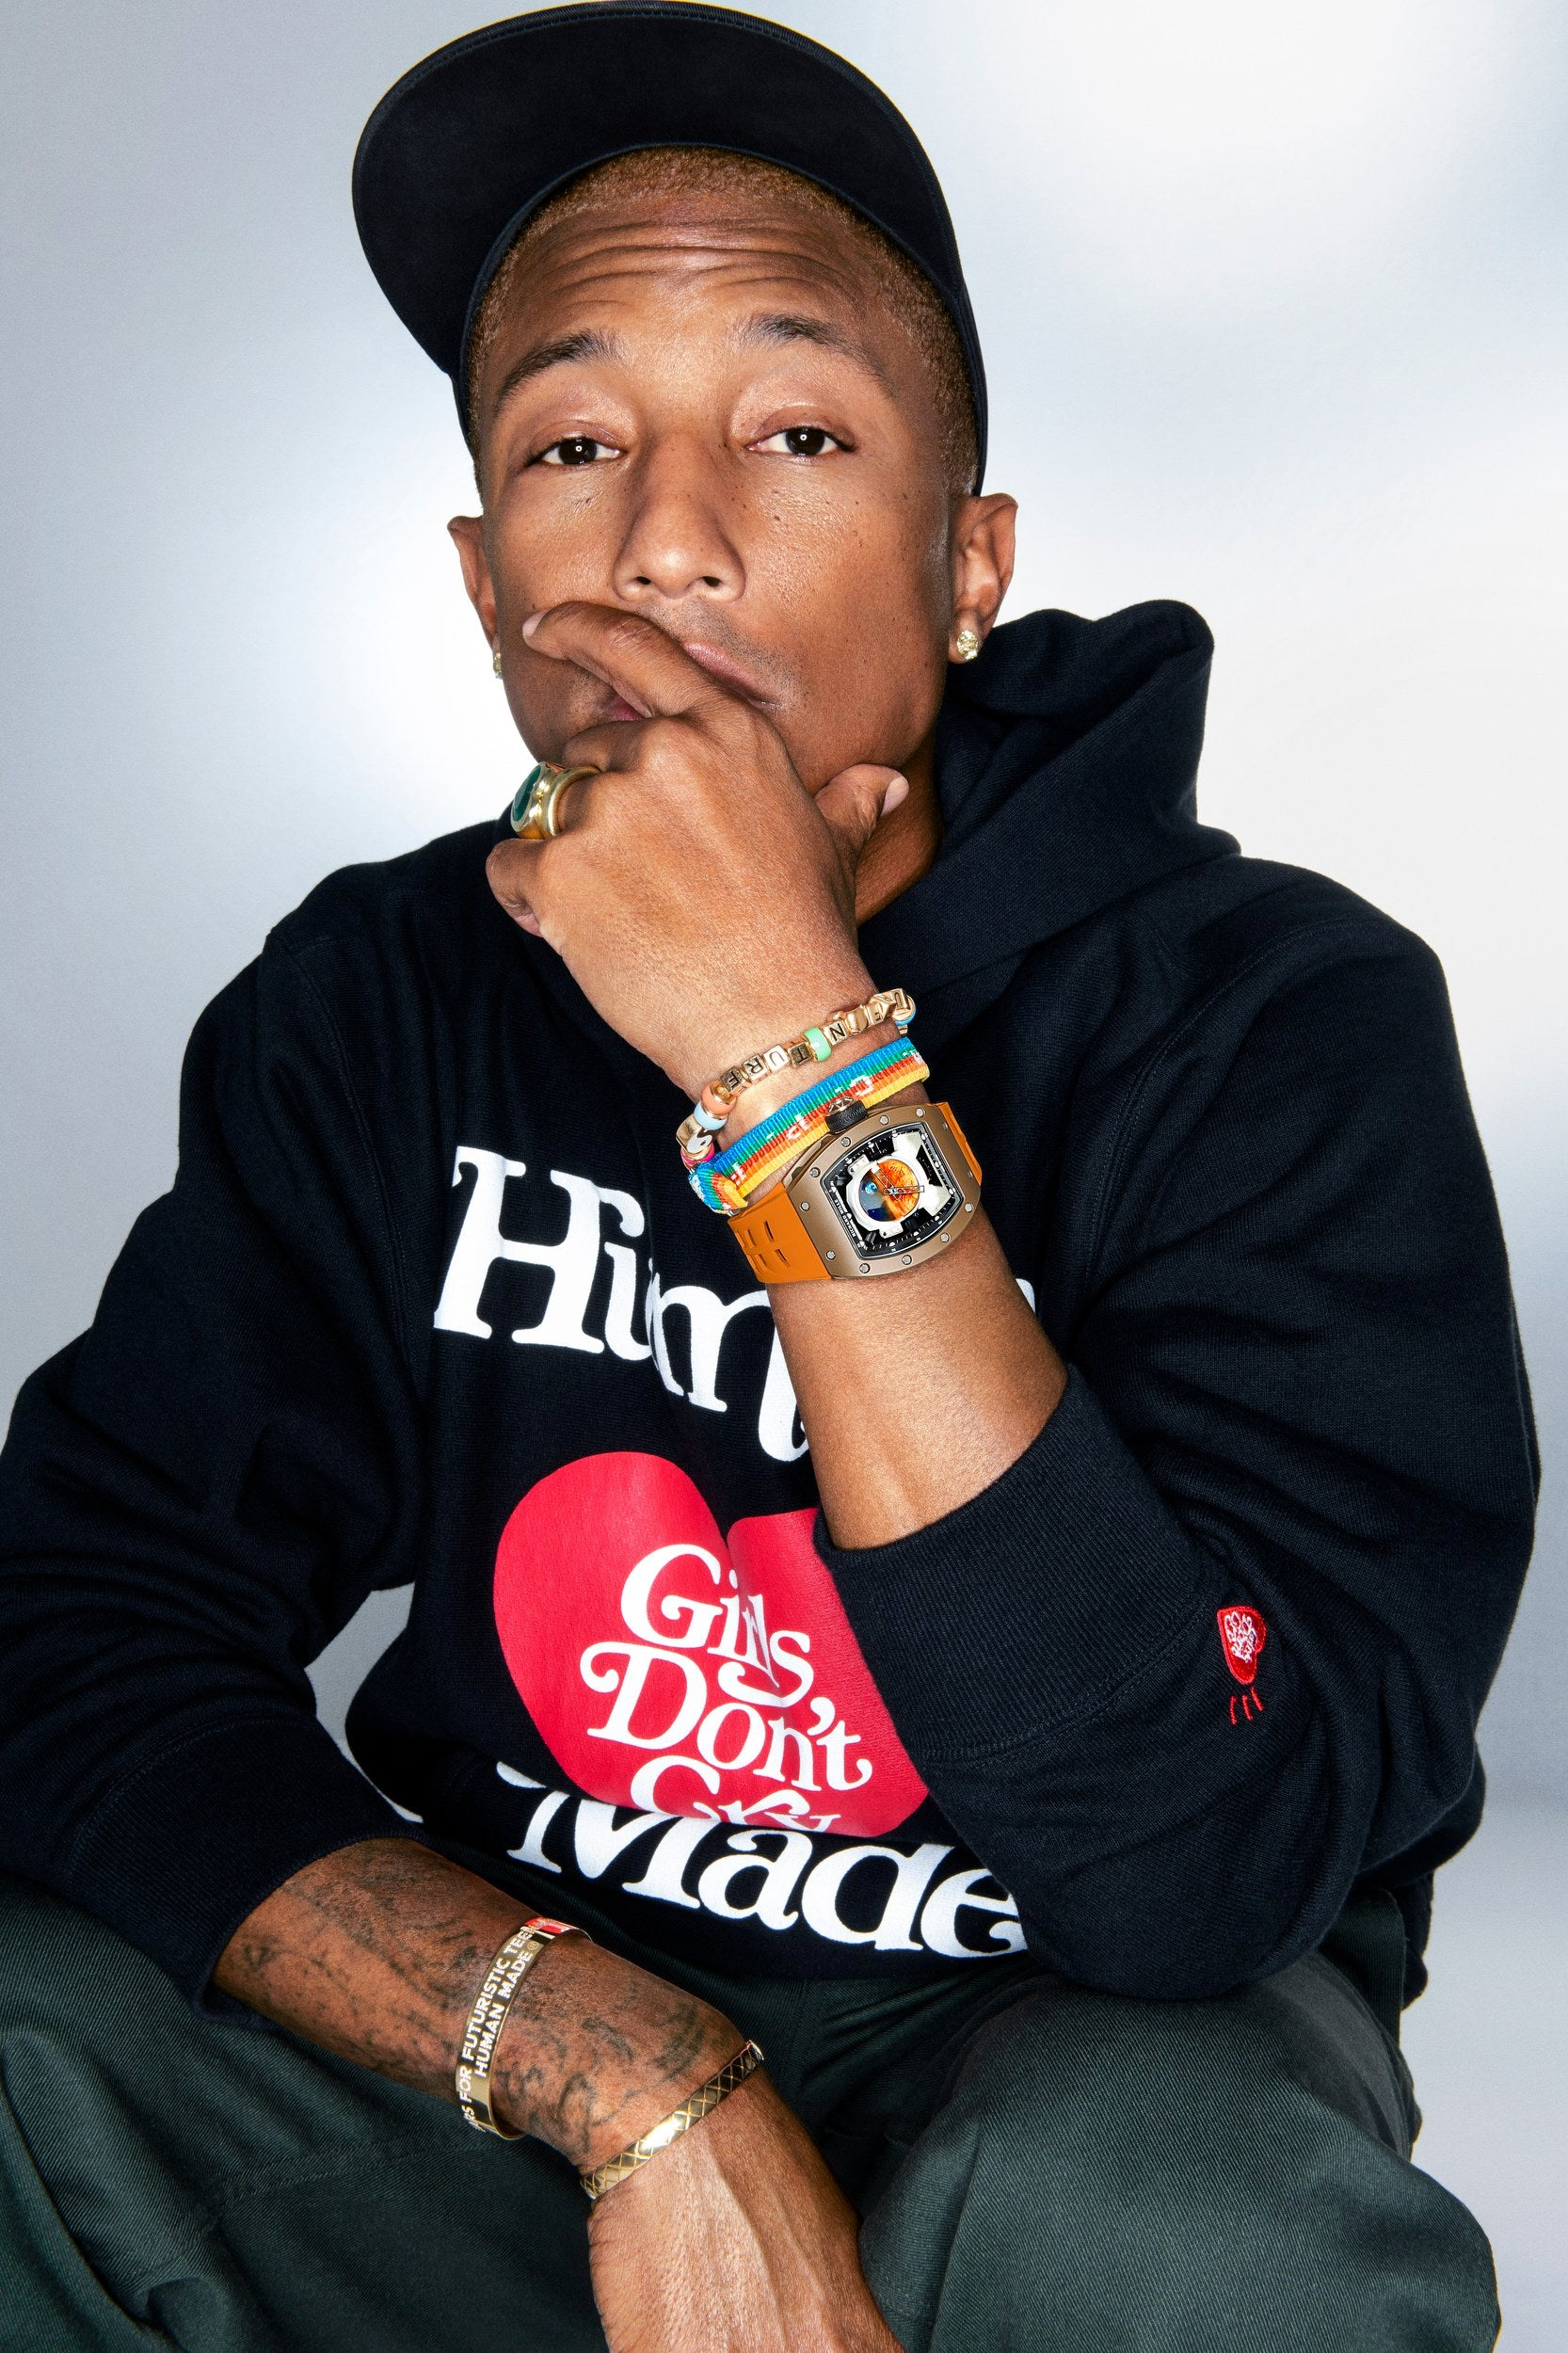 The Million Dollar Pharrell x Richard Mille Watch